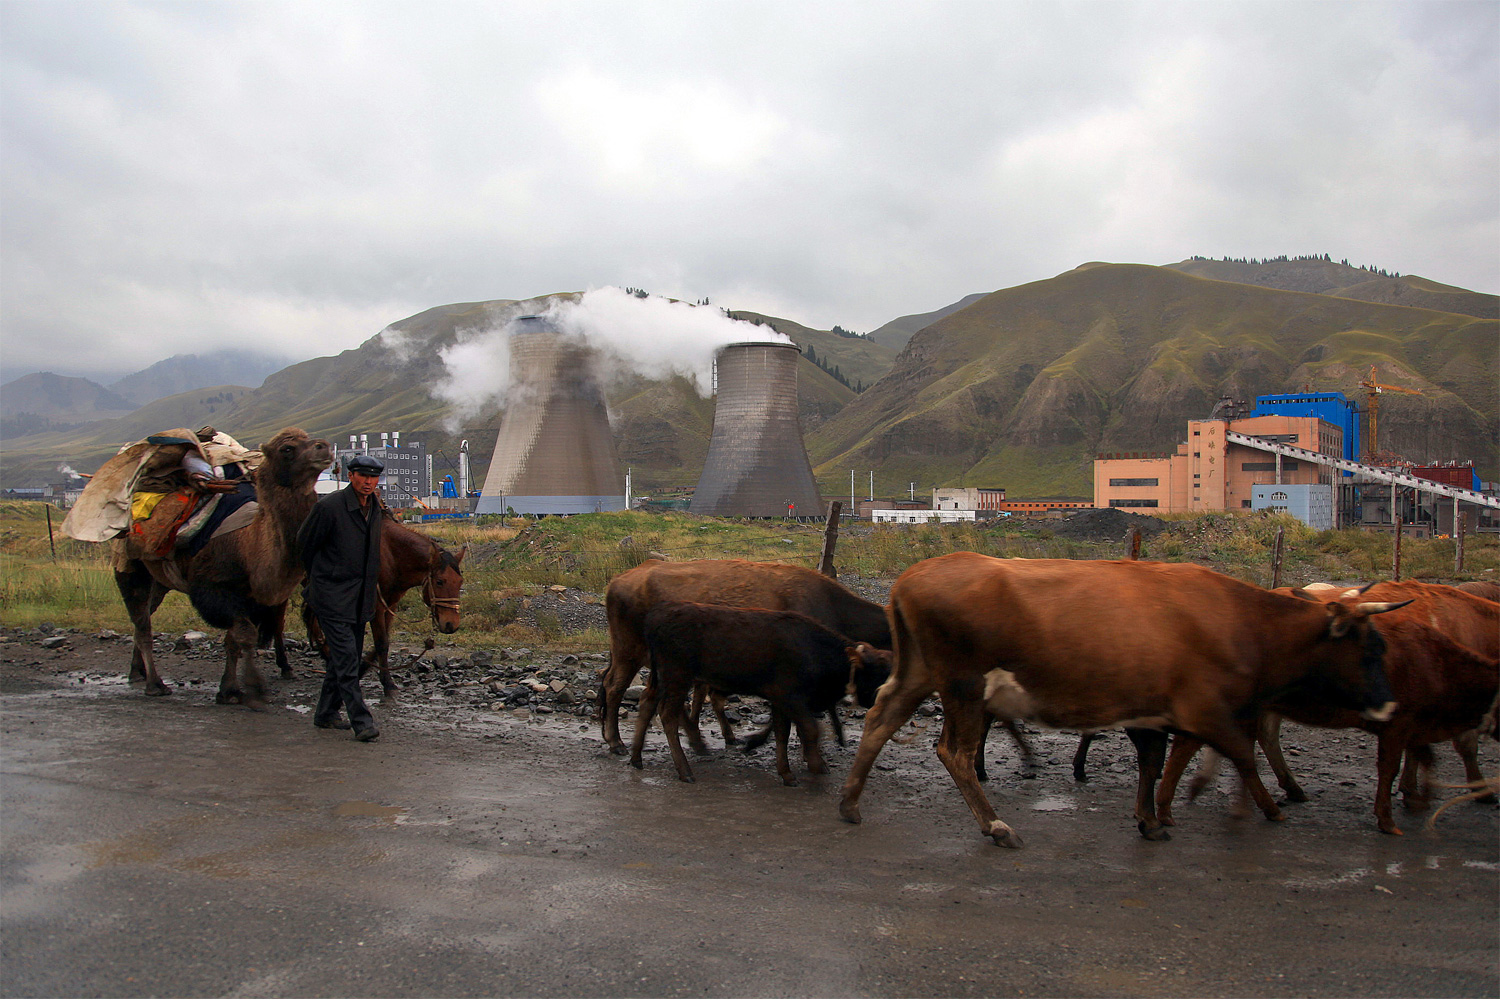 Polluting industry at the headwaters of the Urumqi River in Xinjiang. Photo by Yang Yong.